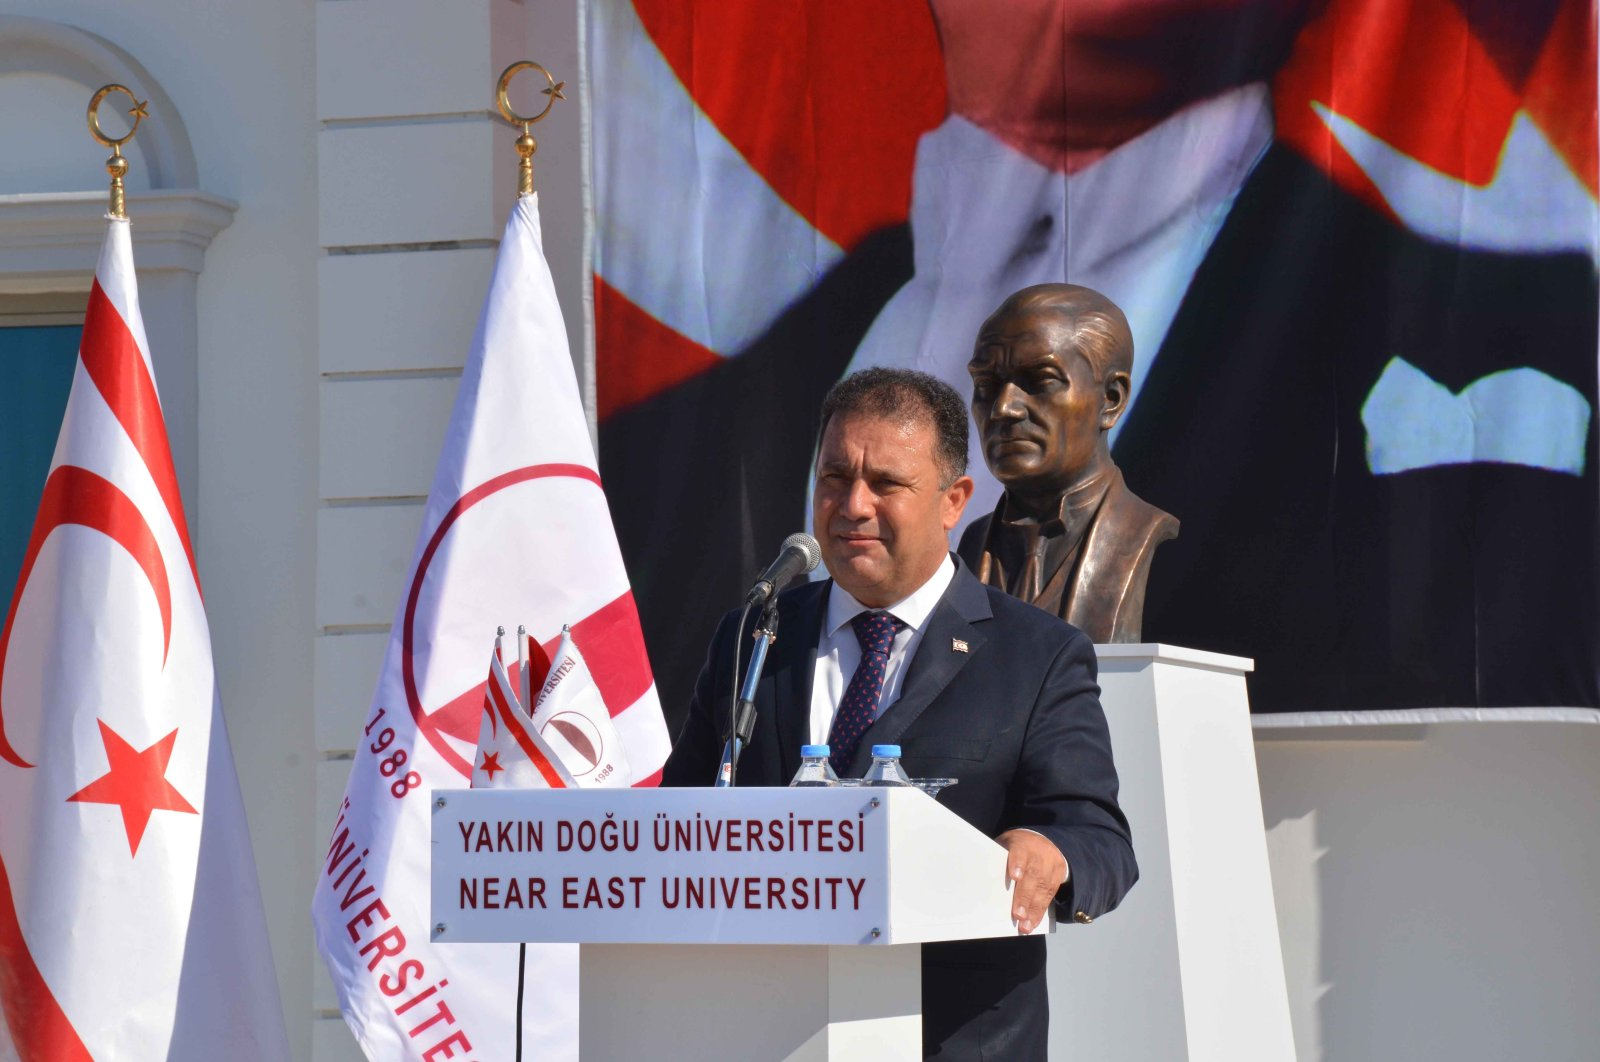 TRNC Prime Minister Ersan Saner attends the inauguration ceremony of Dr. Suat Günsel Elementary School, an affiliate of the Near East University, in Lefkoşa (Nicosia), TRNC, Aug. 27, 2021. (IHA Photo)